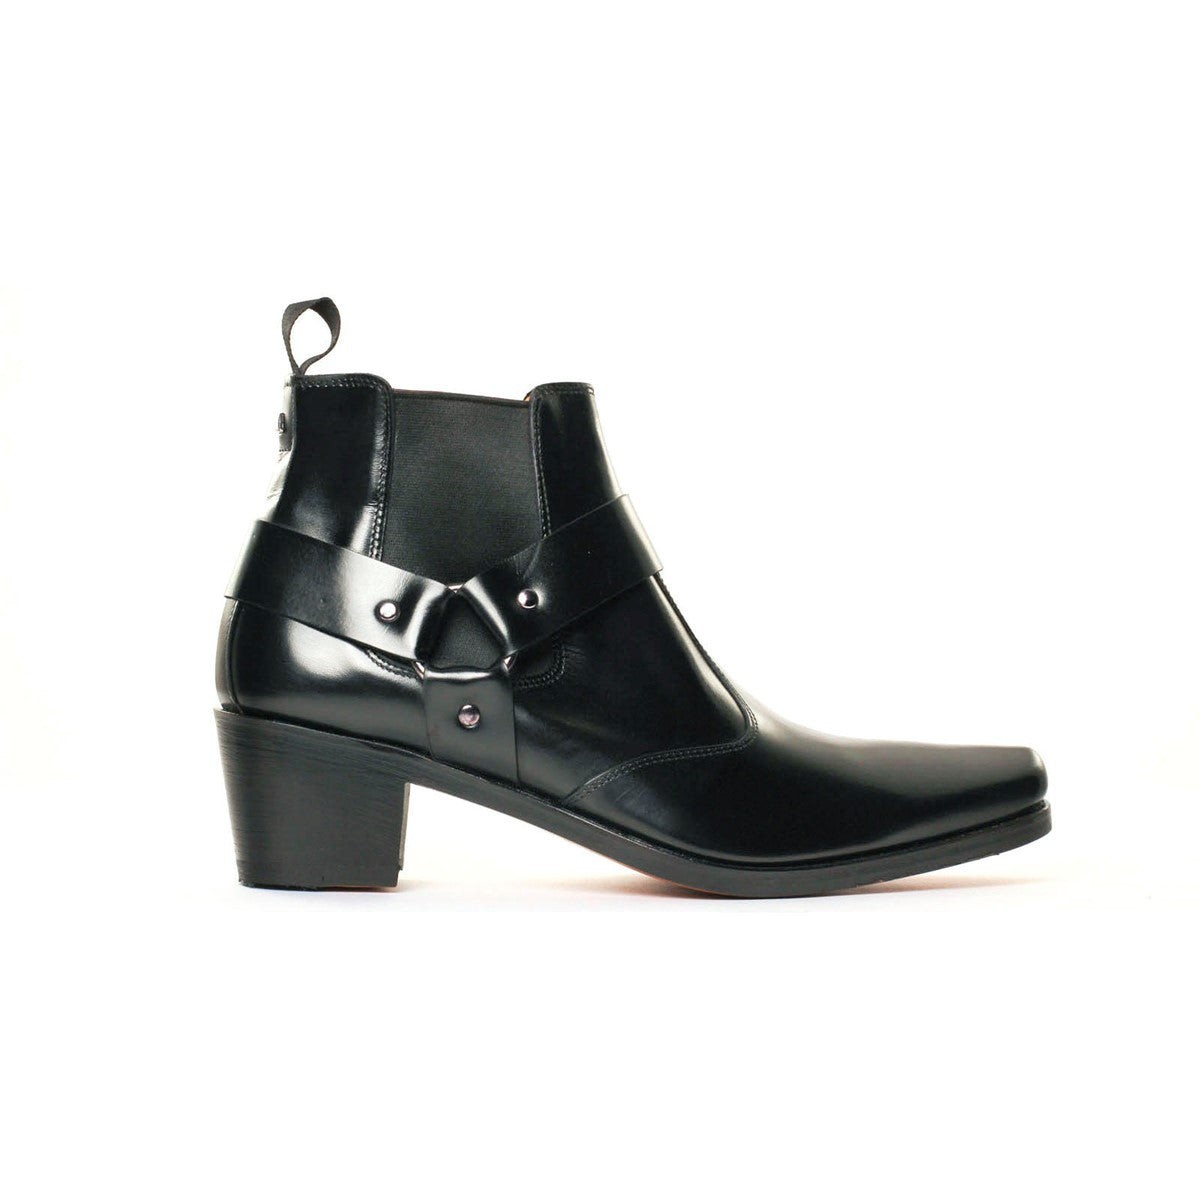 Boots elasticated black calf leather Pigalle 5cm